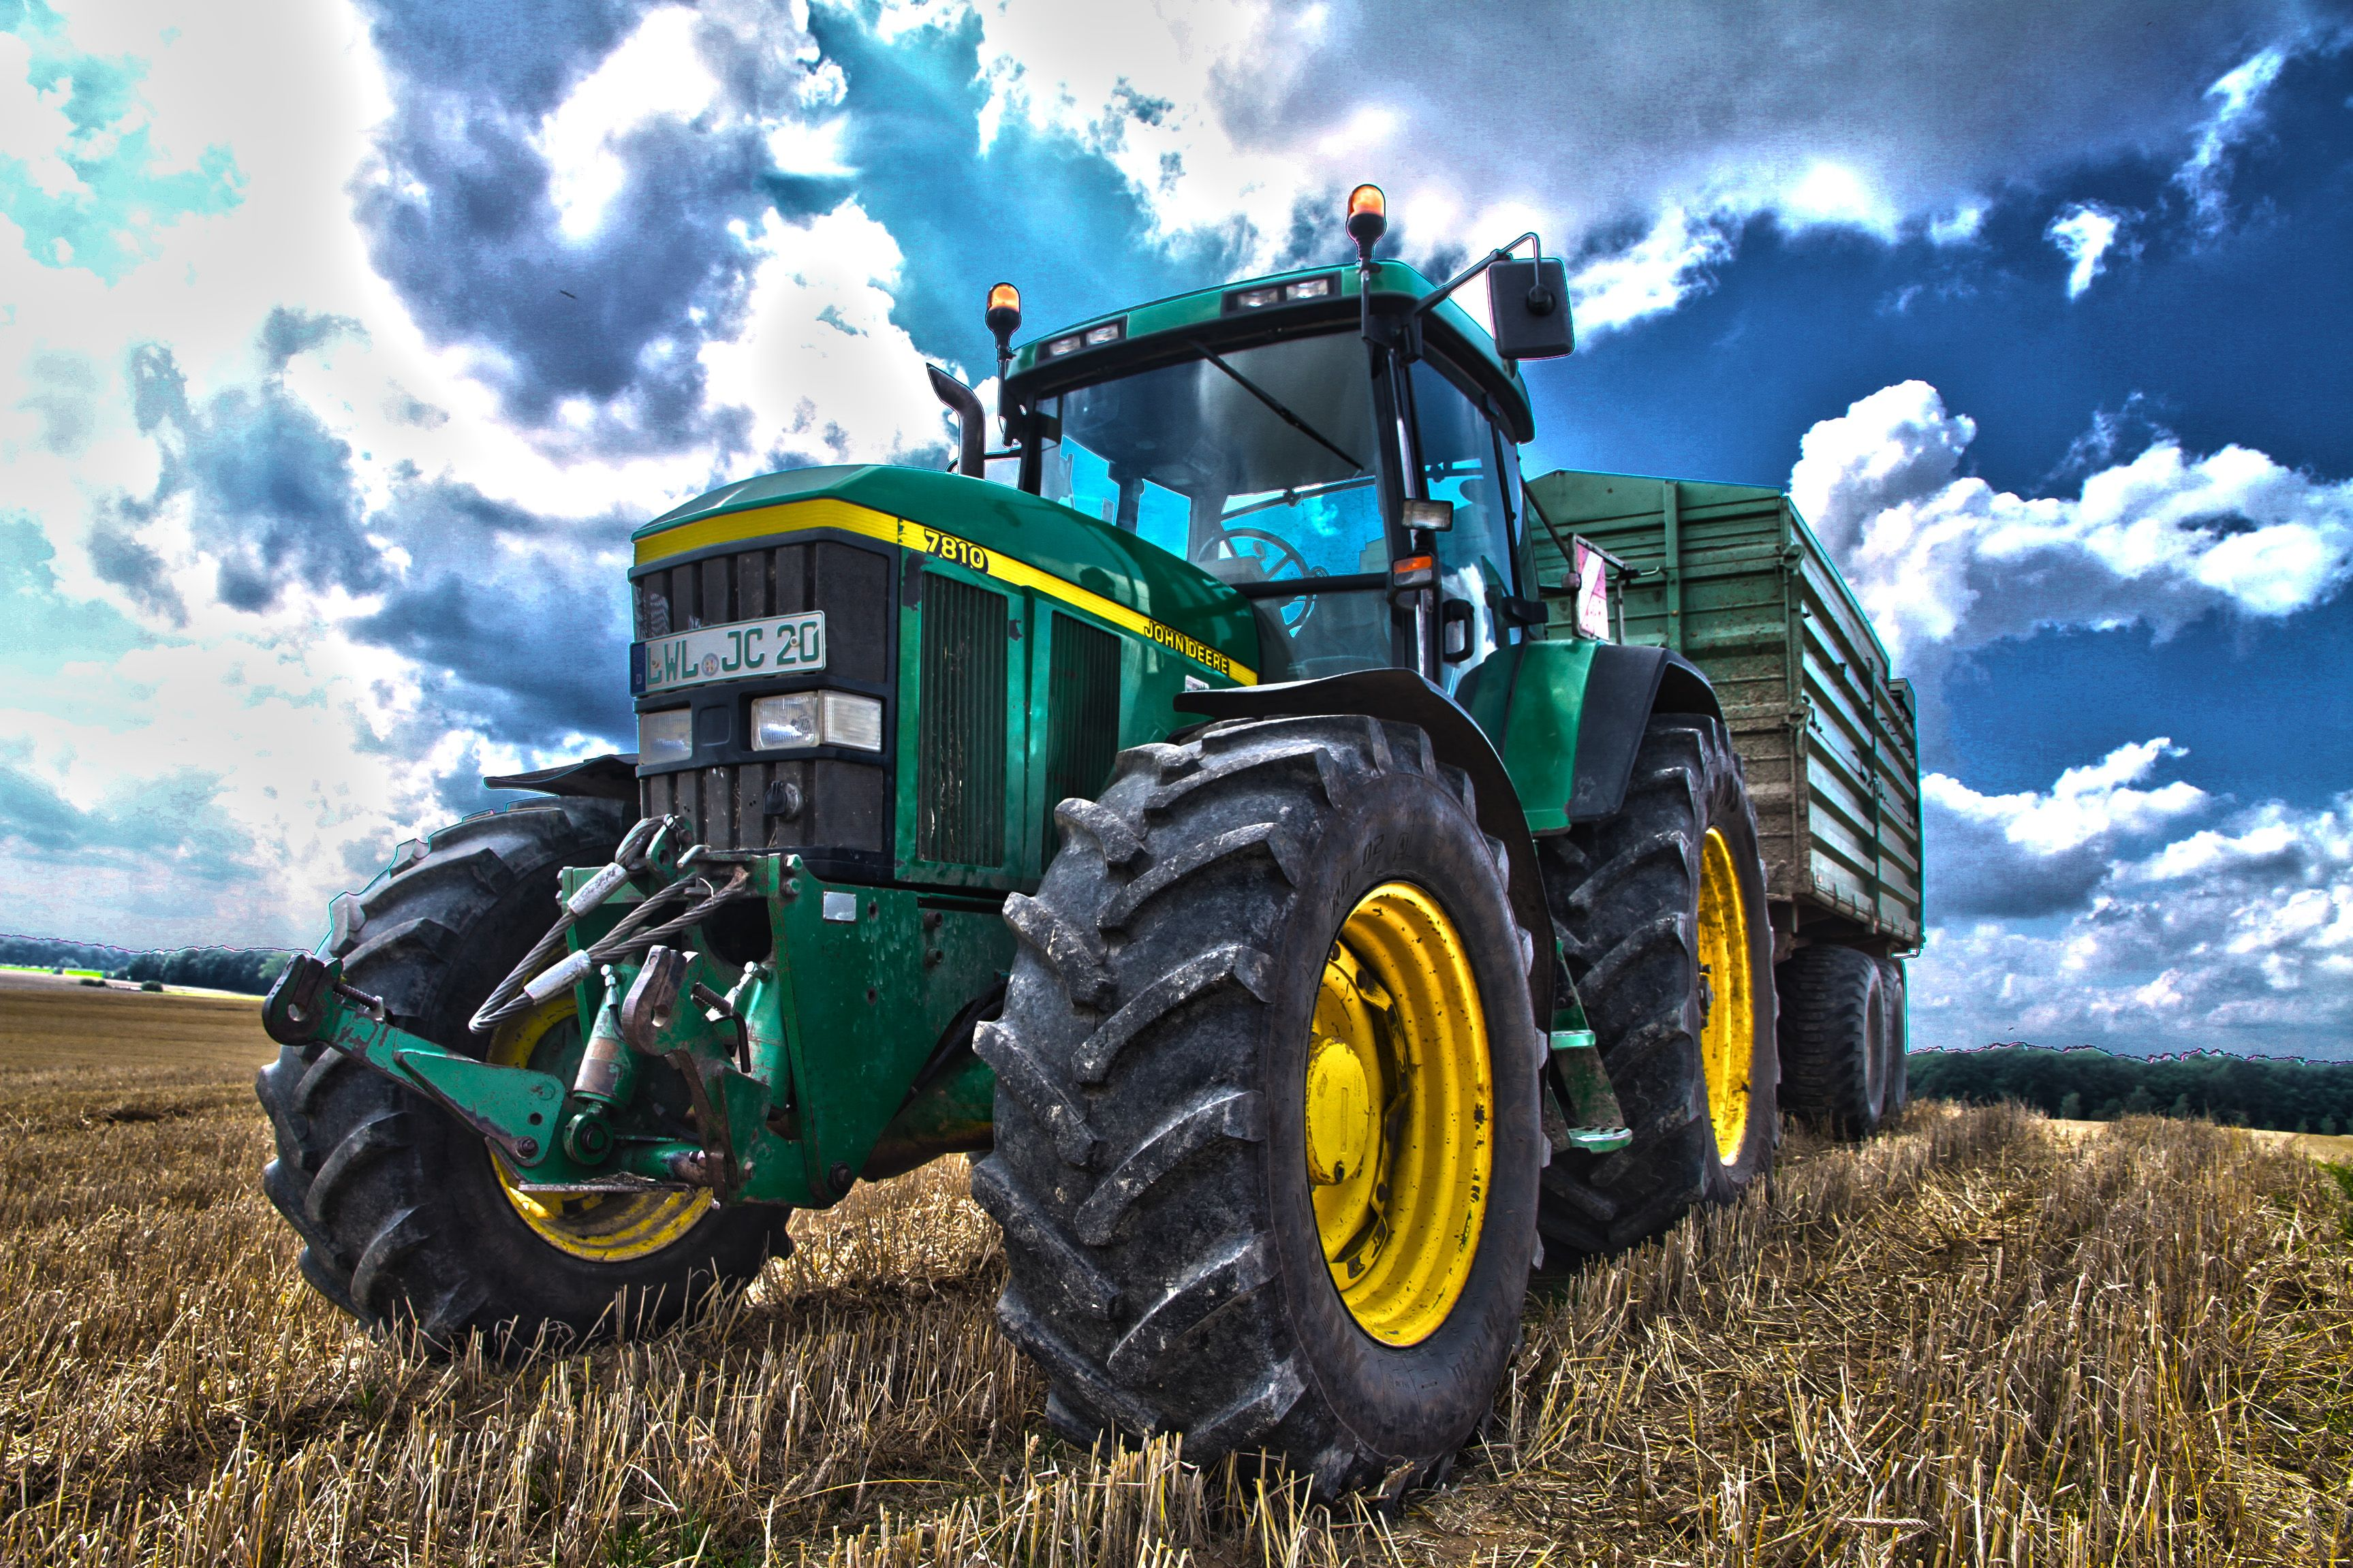 John deere wallpapers hd quality john deere images john wallpapers